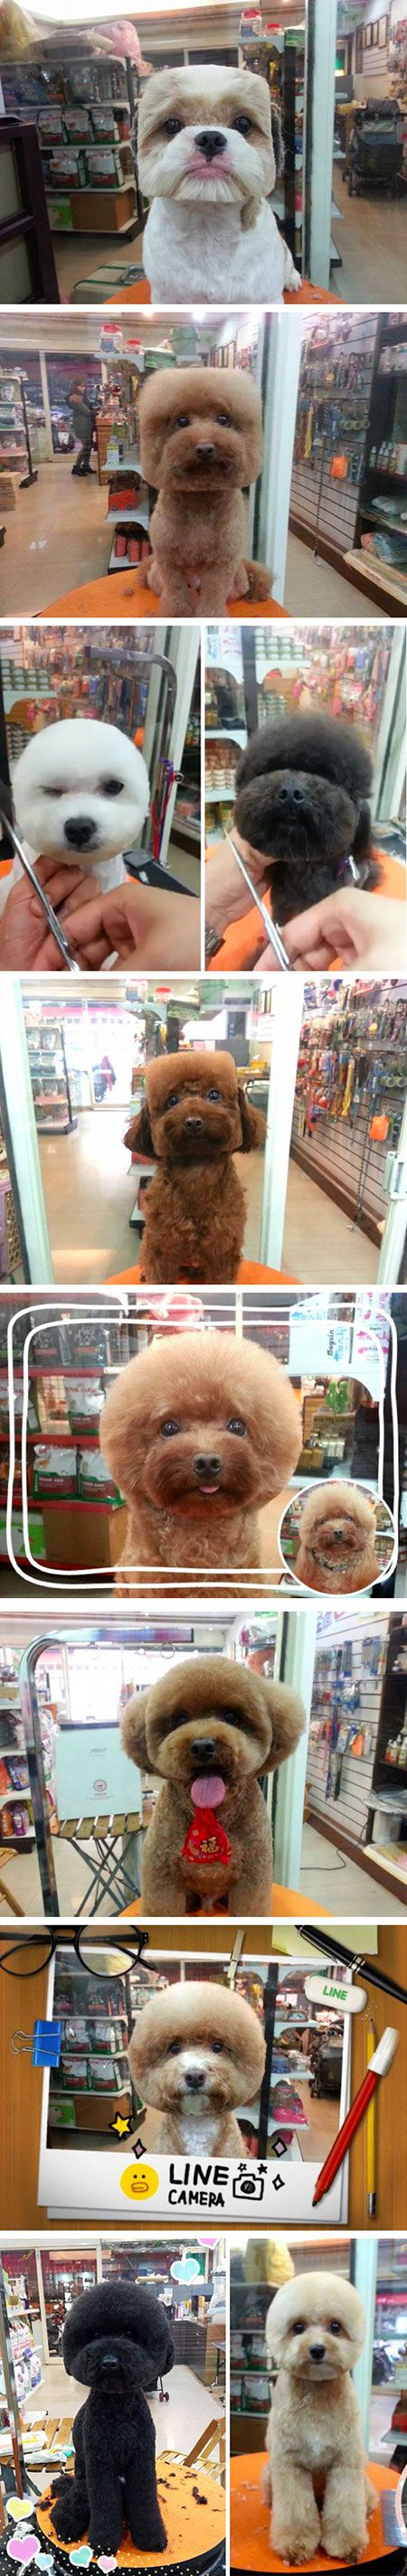 "The latest trend among dog owners in Taiwan looks just as funny as it sounds – square and round dog haircuts! Dogs, typically Poodles, are having the fur on their heads sculpted into perfect circles or squares, and the results are posted online in what might be the first ""my dog has a rounder head than yours"" competition ever."